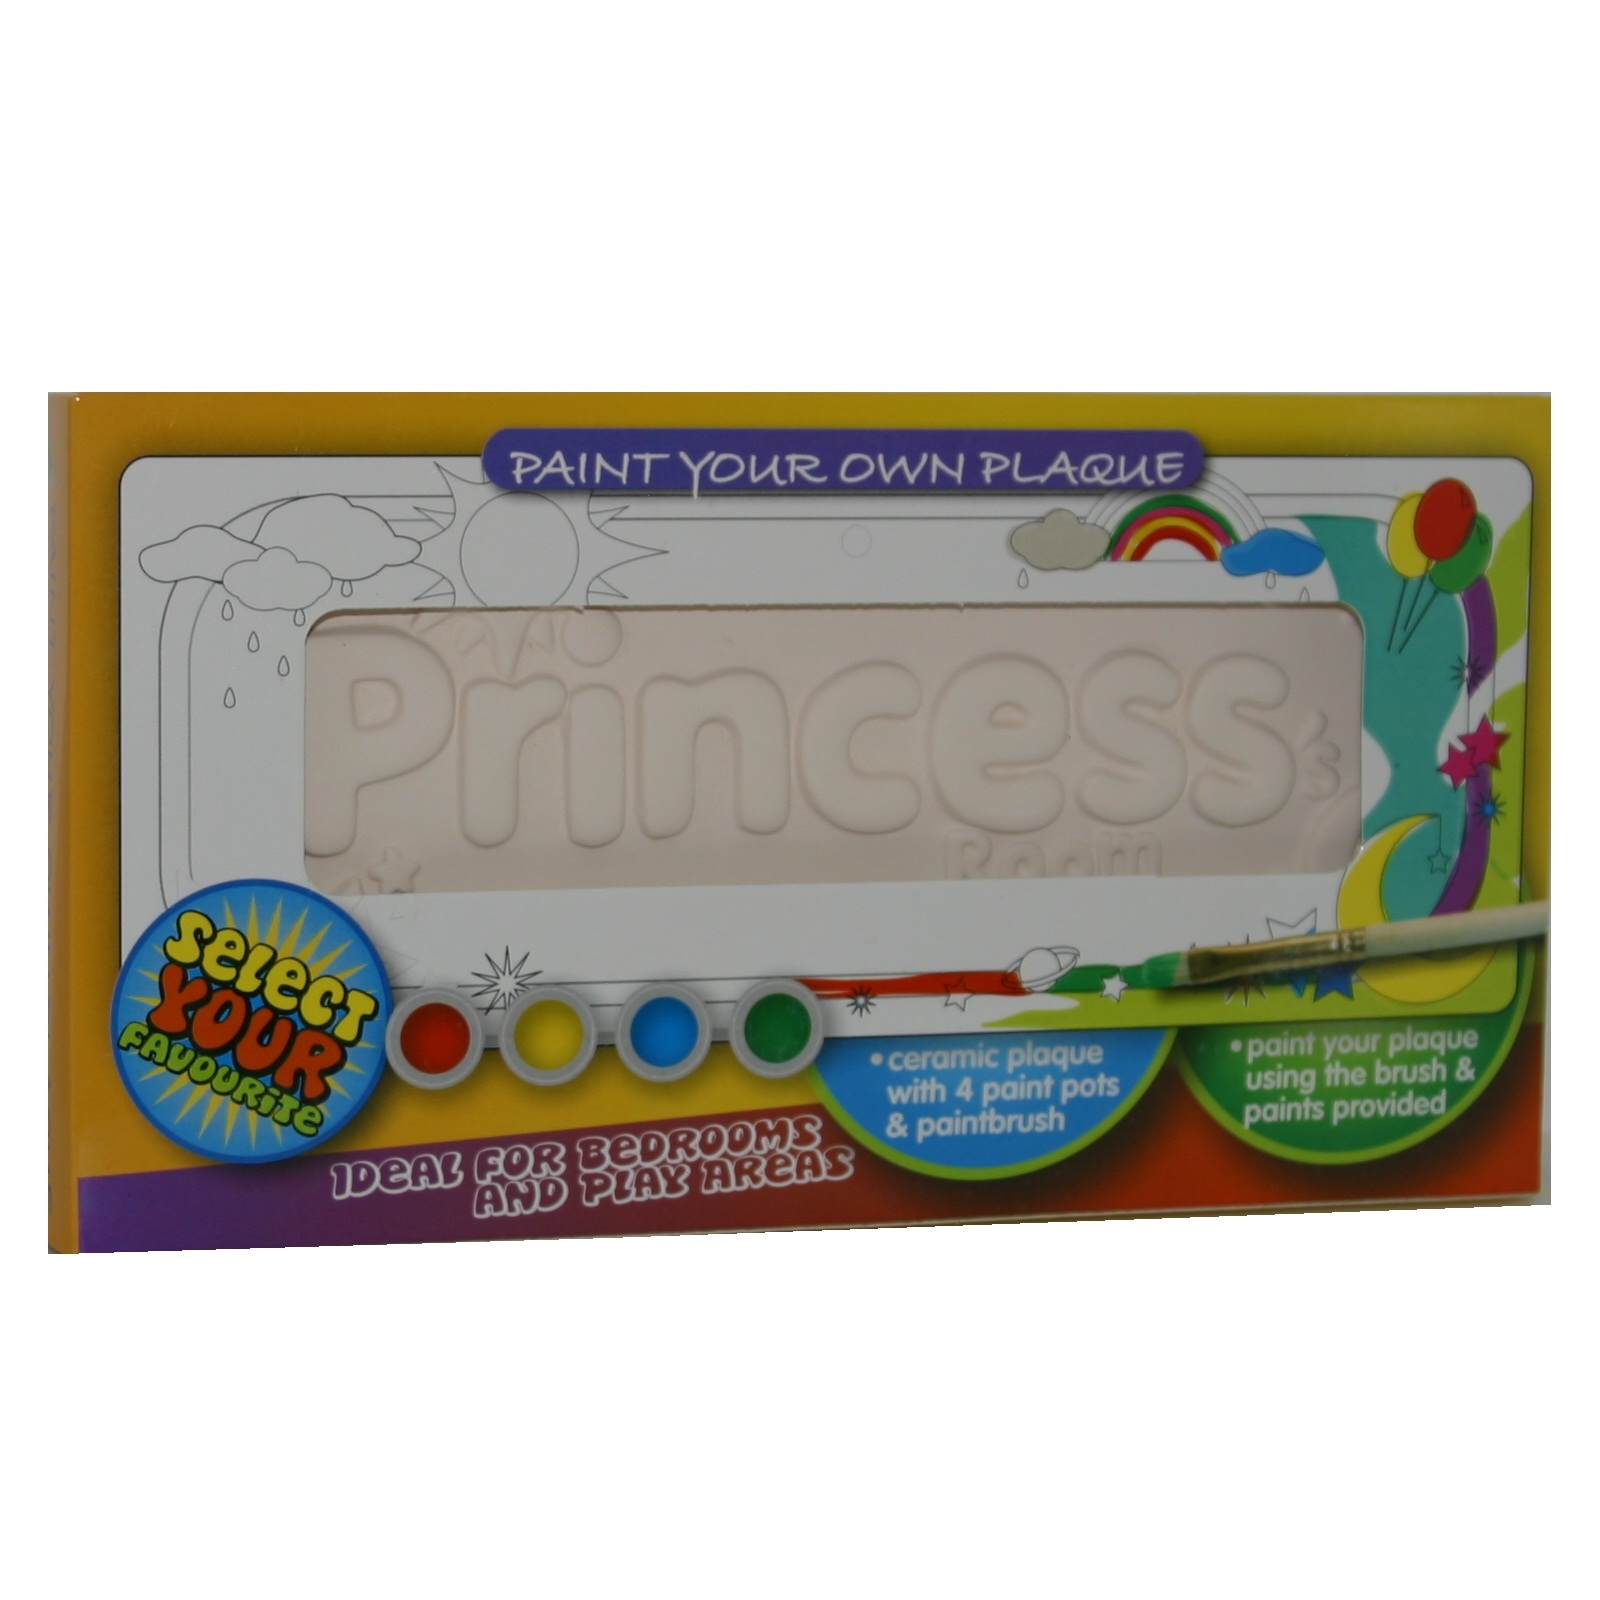 Princess s room paint your own plaque painting craft kit for Paint your own room visualizer